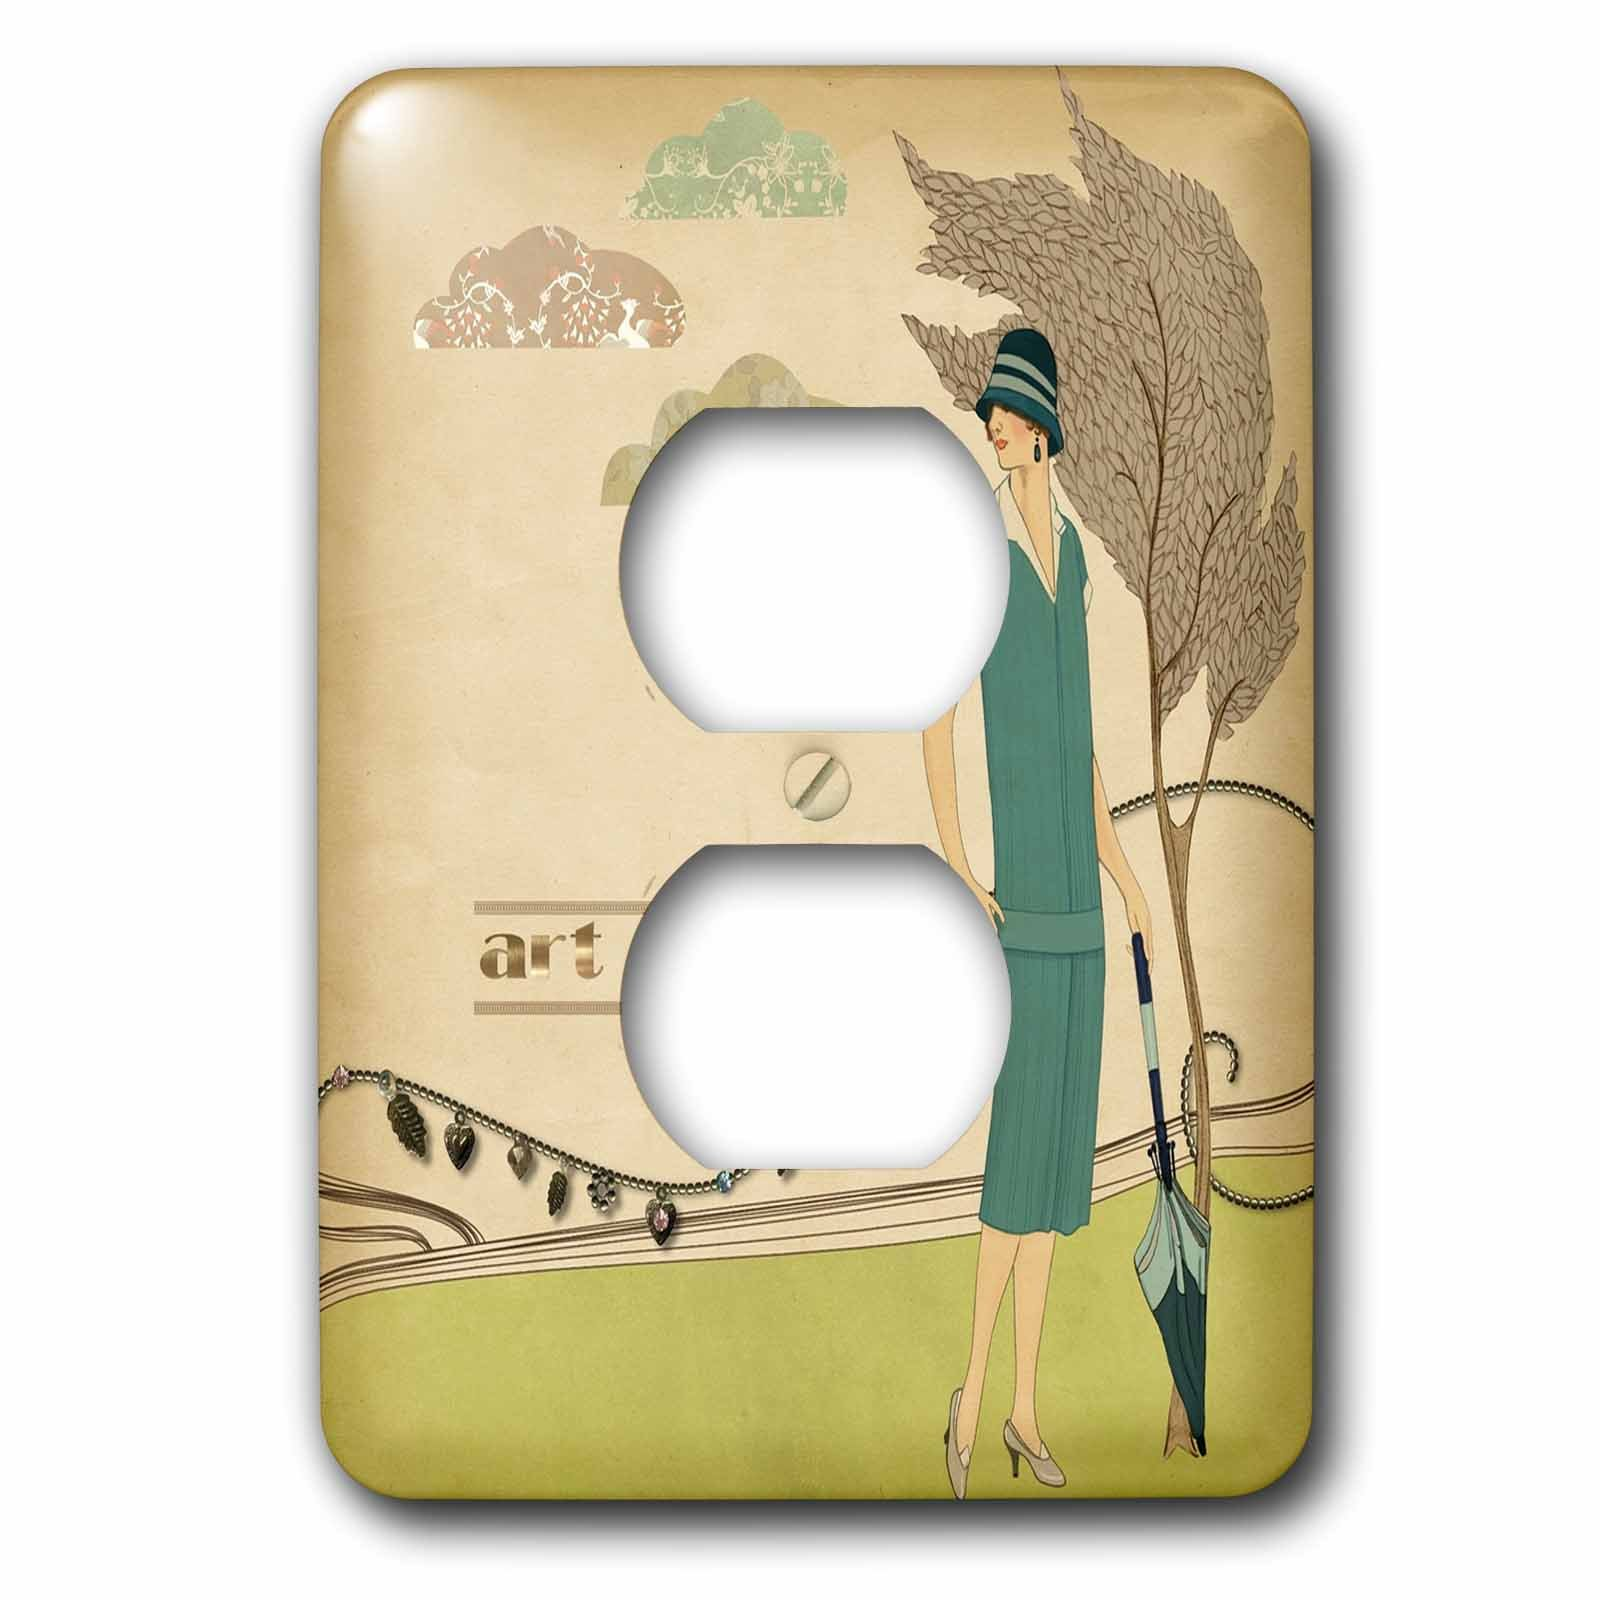 3dRose Art Deco - Image of Lady In Teal Dress With Gold Words Art Deco - Light Switch Covers - 2 plug outlet cover (lsp_281612_6)